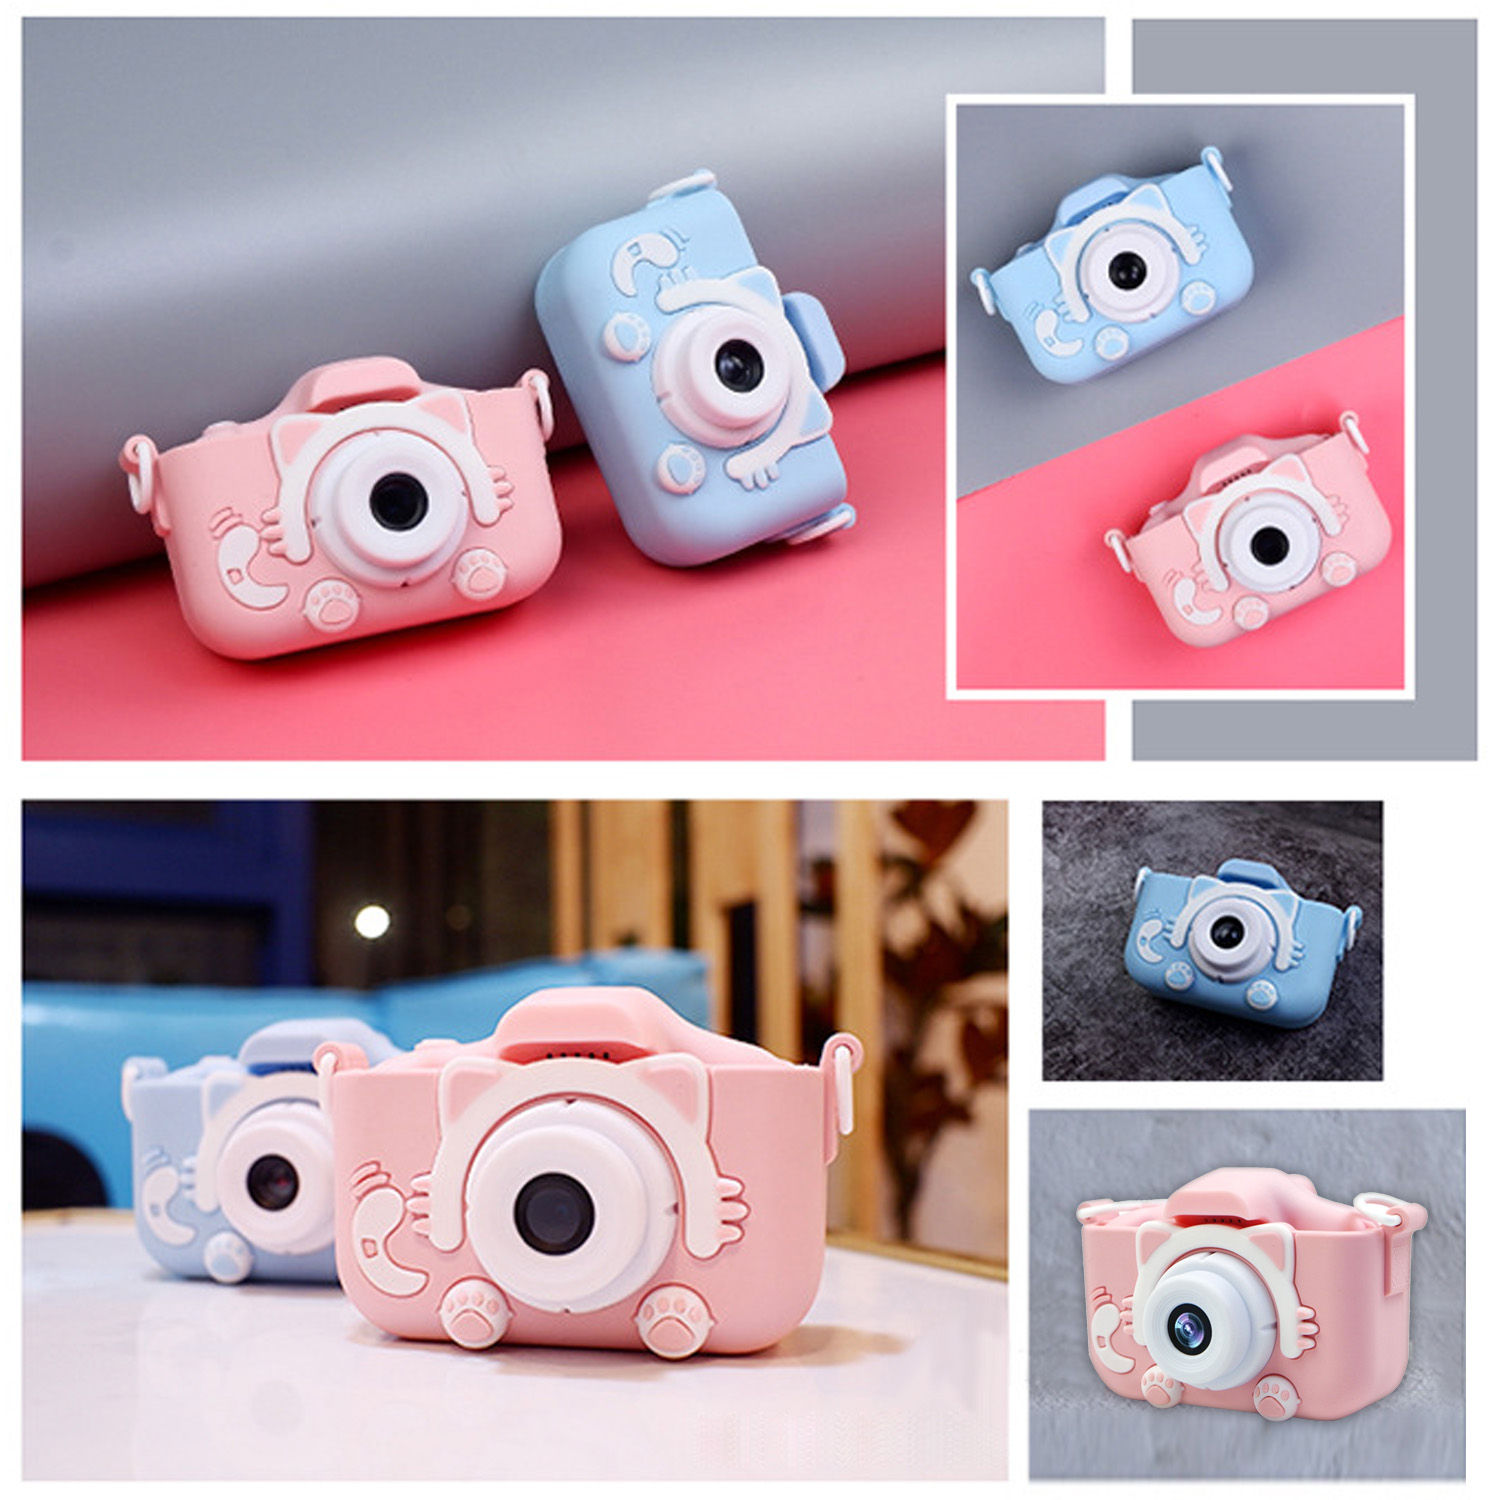 Kids Mini Cute Cat Shape Digital Camera 1080P 1200W Photography Camcorder Video Camera Electronic Camera Toys Built-in Games